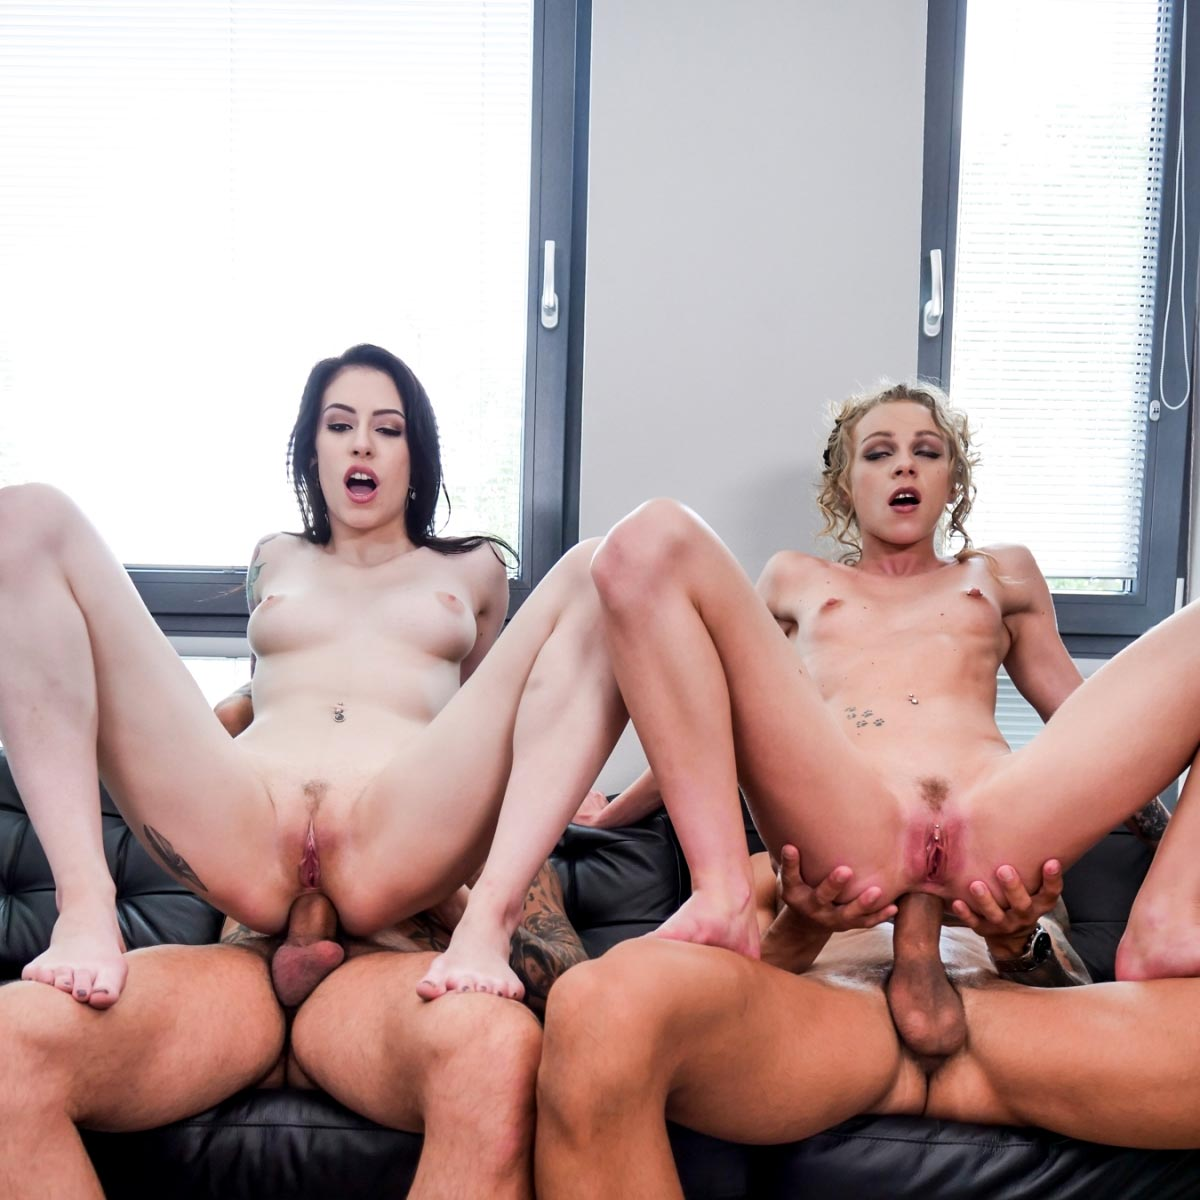 Evil Angel, Anal, GangBang and Shemale Sex. Revolutionary porn videos in 4K.